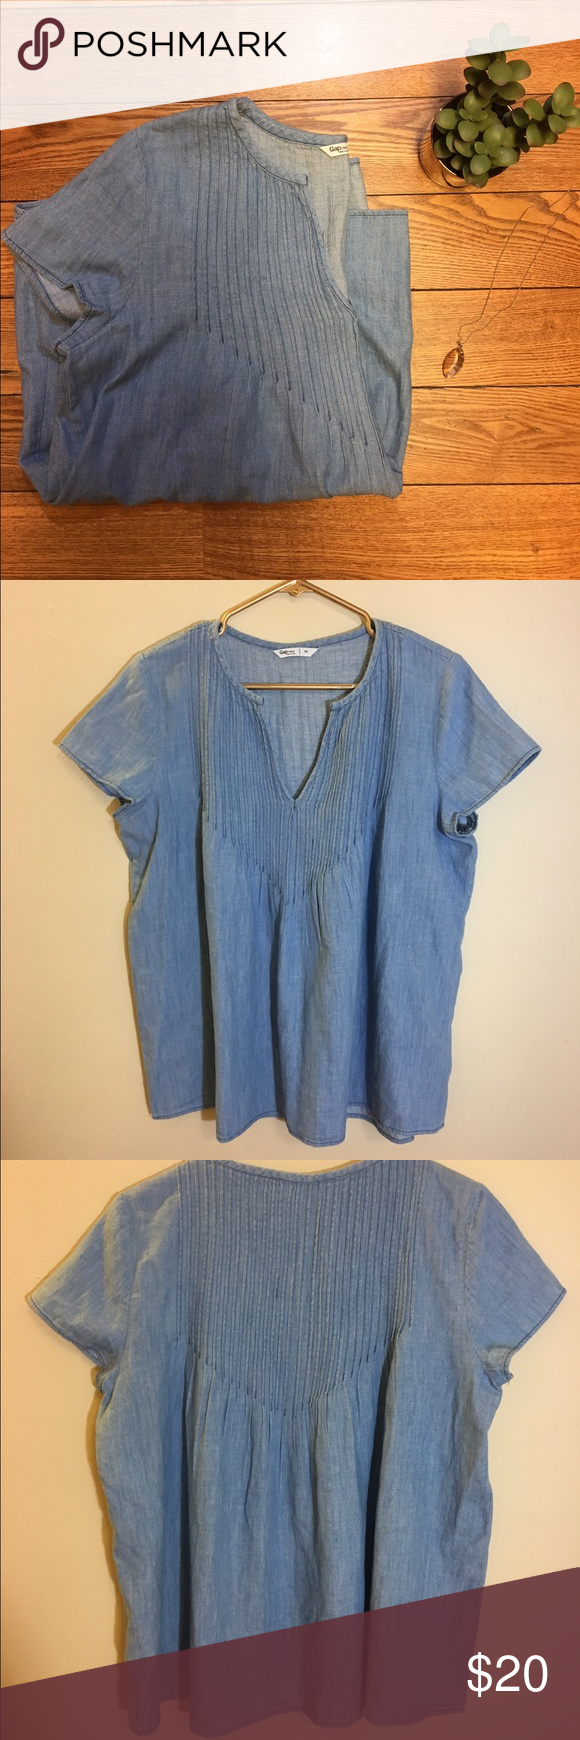 ✨✨Gap Light Chambray Top This super cute Chambray top from The Gap is perfect for your Saturday trip to the farmers market or paired with your favorite skinny jeans and ankle booties for brunch with the girls. Size Medium and in great condition! GAP Tops